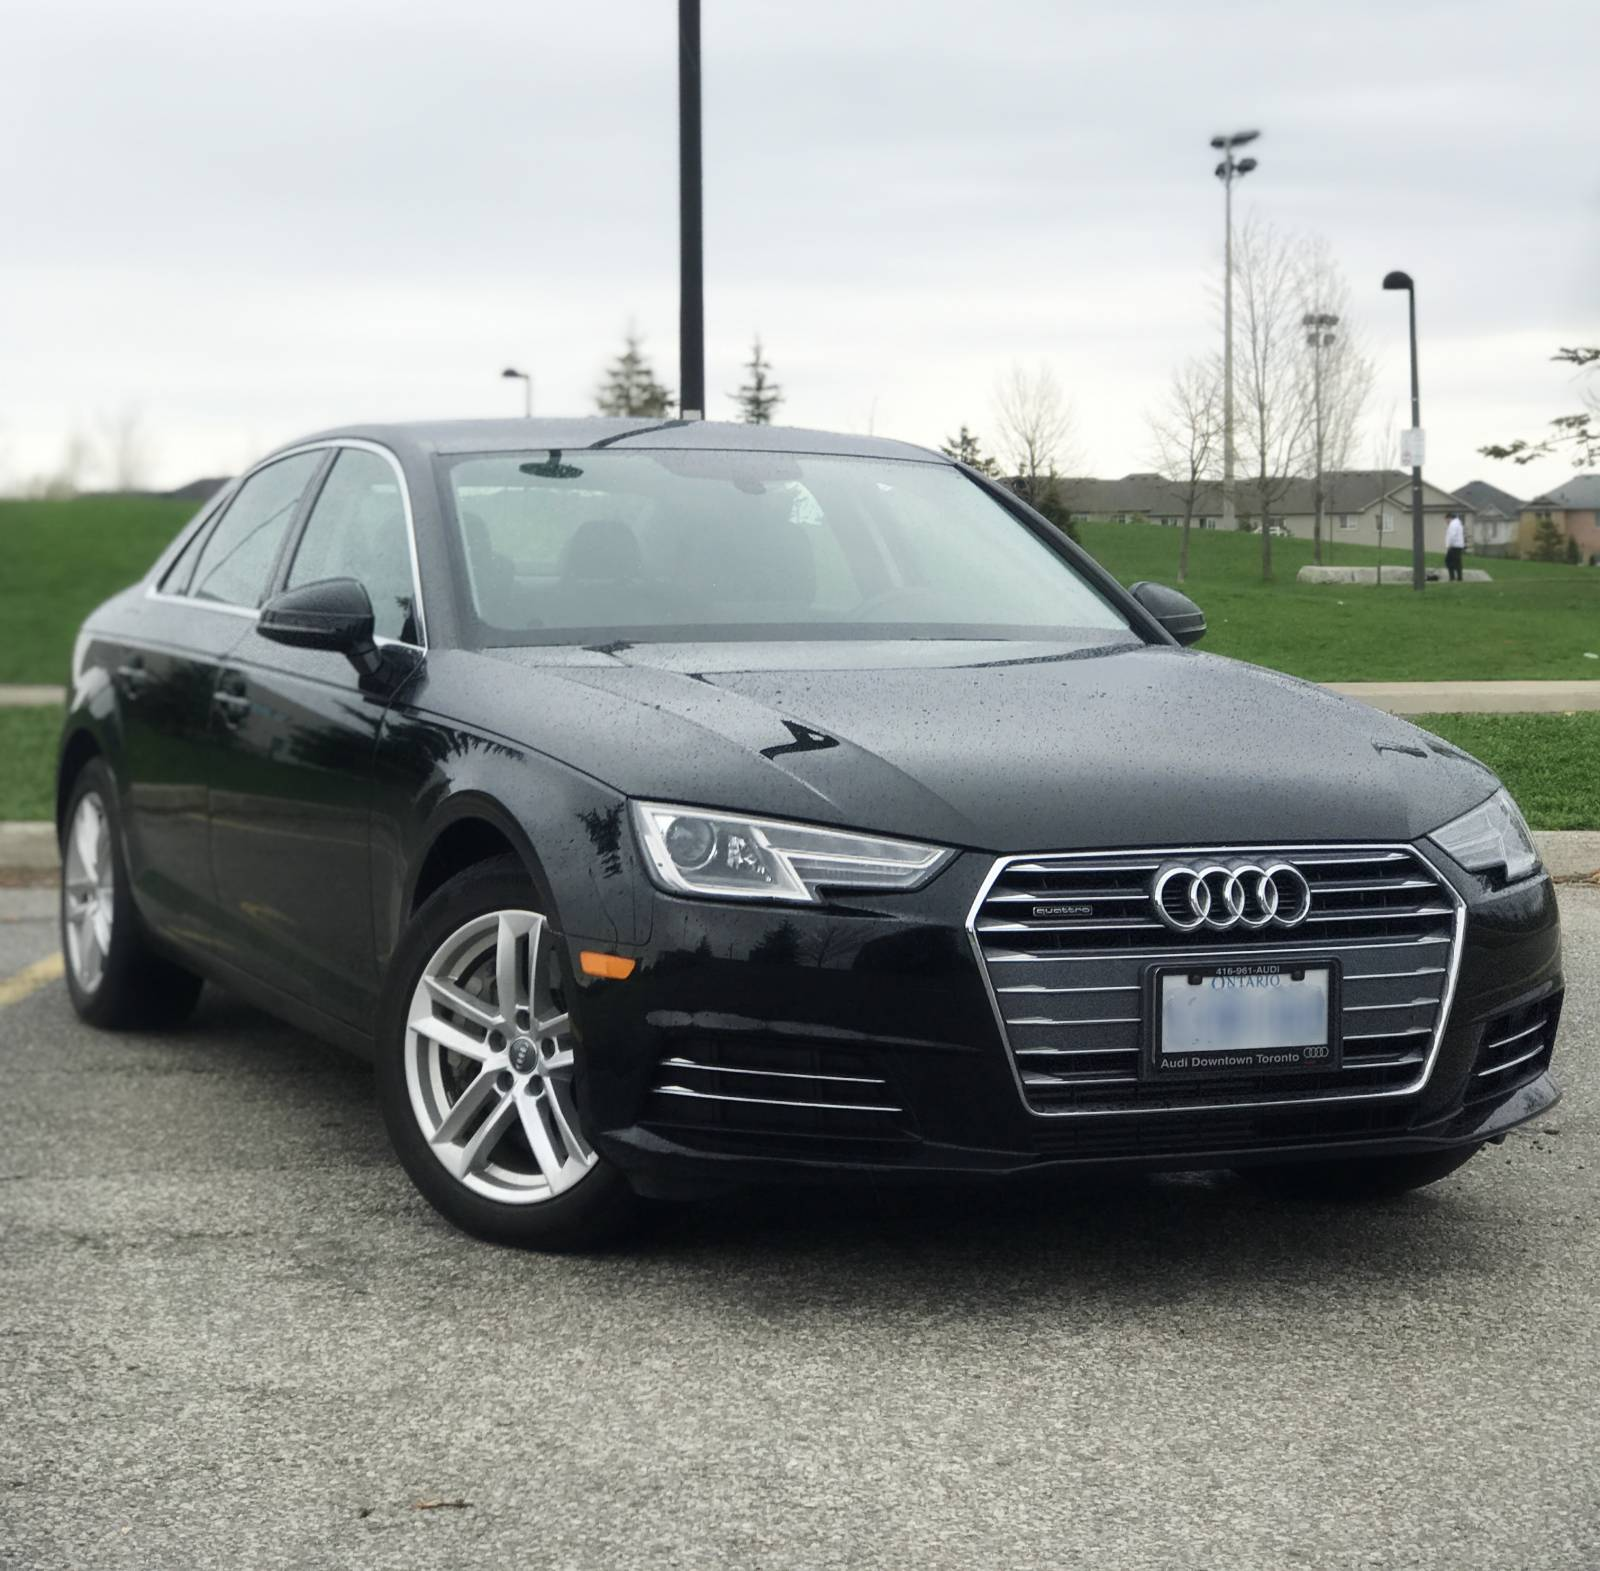 Audi Lease Takeover In Toronto, ON: 2017 Audi A4 Quattro